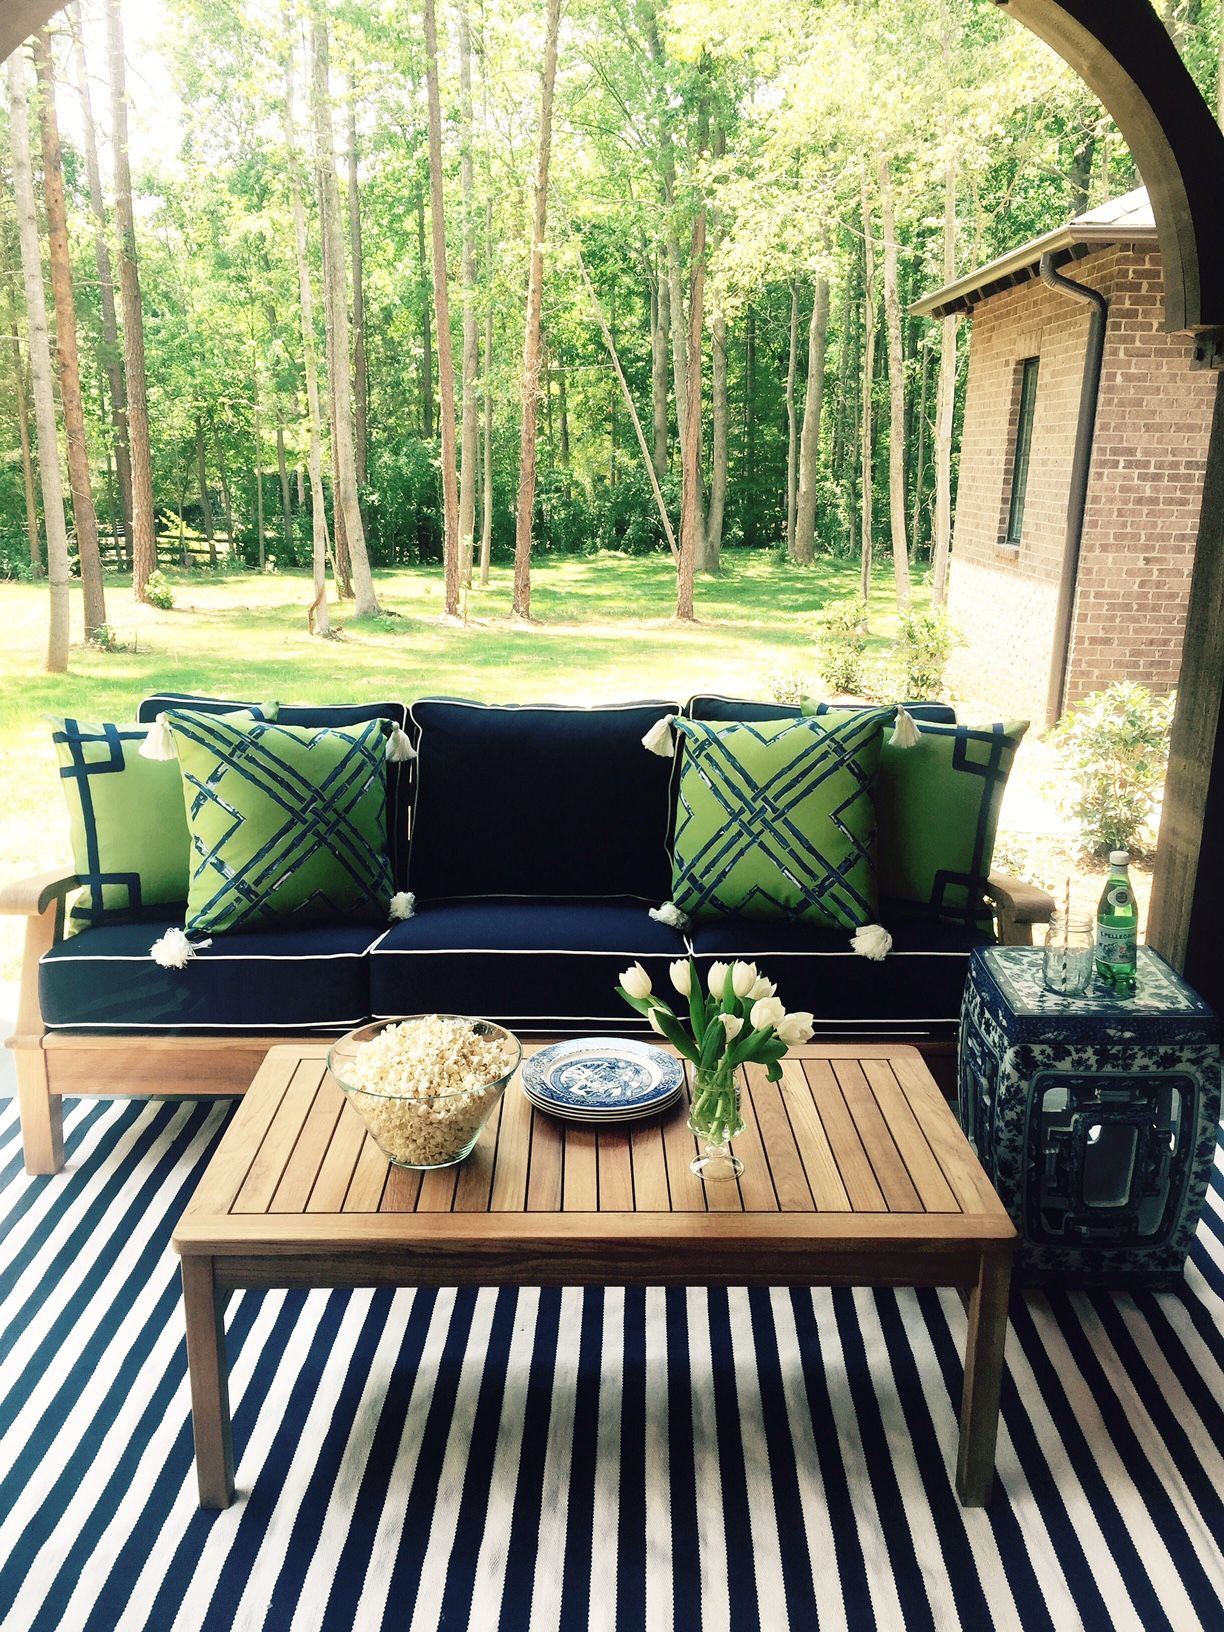 Lacefield Ginko Outdoor Pillow Collection via Charlotte designer Traci Zeller #designingwomen #outdoorliving